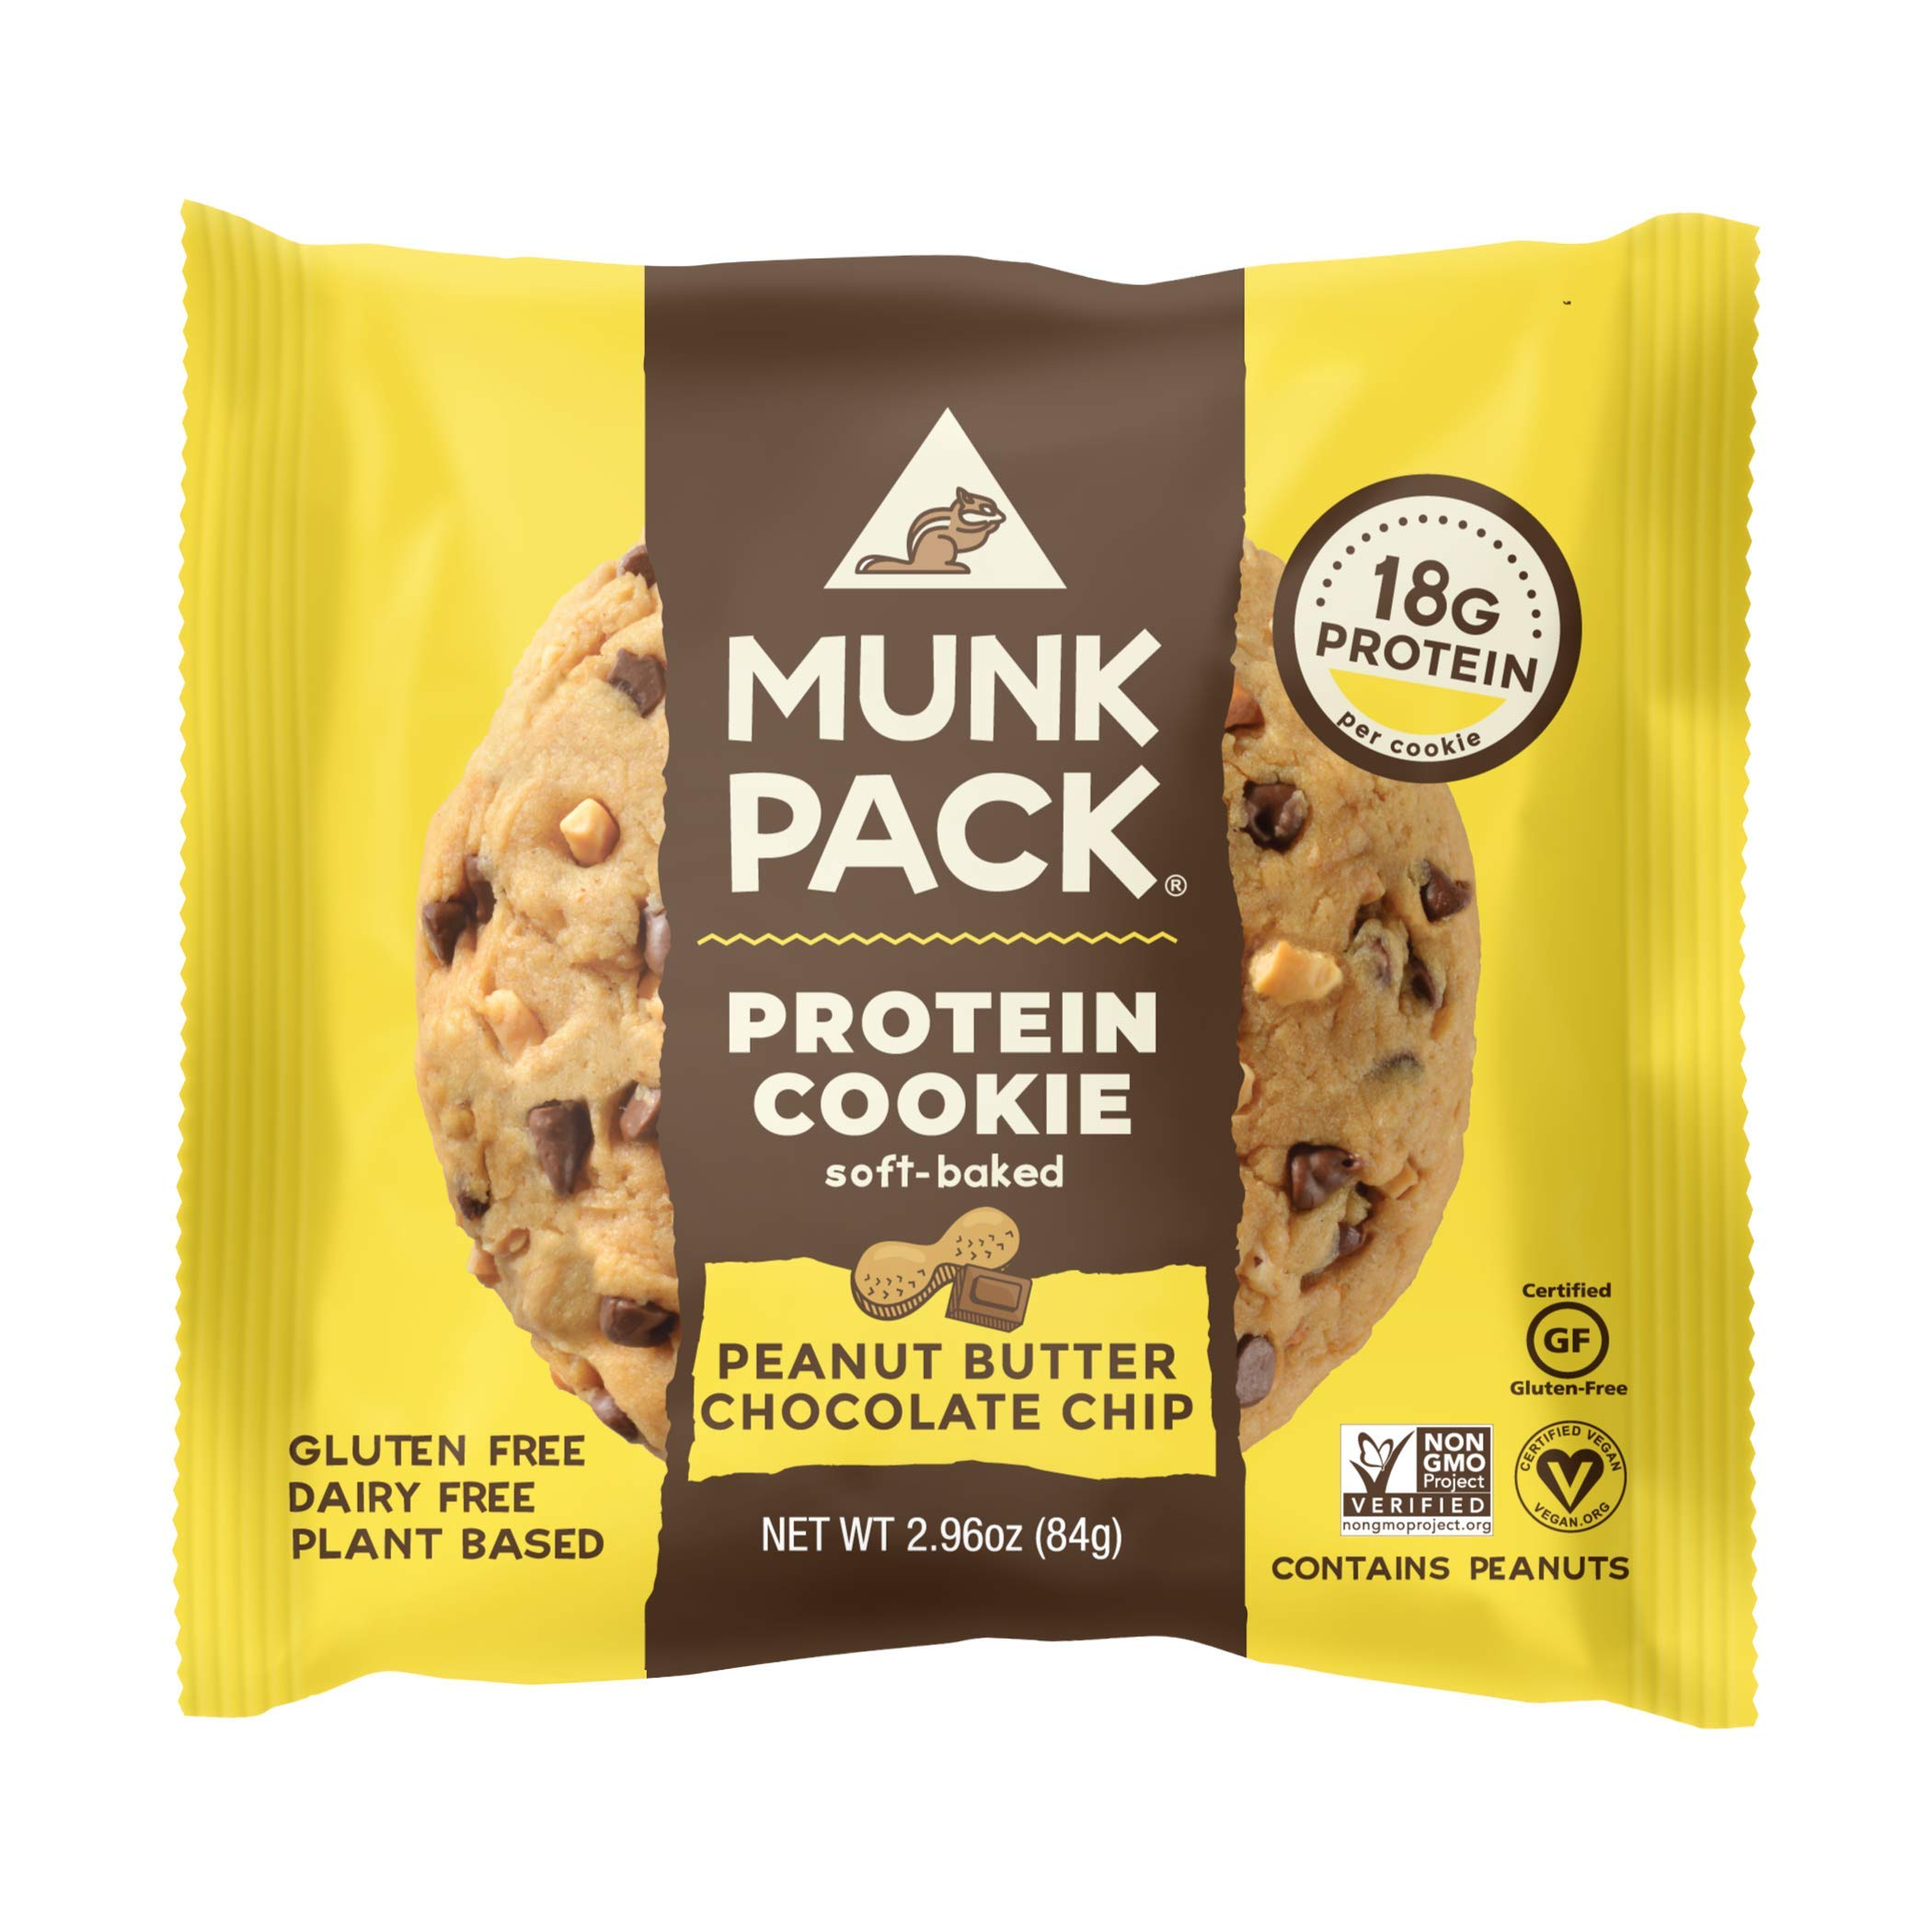 Munk Pack Vegan Protein Cookie   18 Grams of Protein   Vegan, Gluten-Free, Dairy-Free, Soy-Free, Soft Baked   2.96oz (Peanut Butter Chocolate Chip, Pack of 12) by Munk Pack